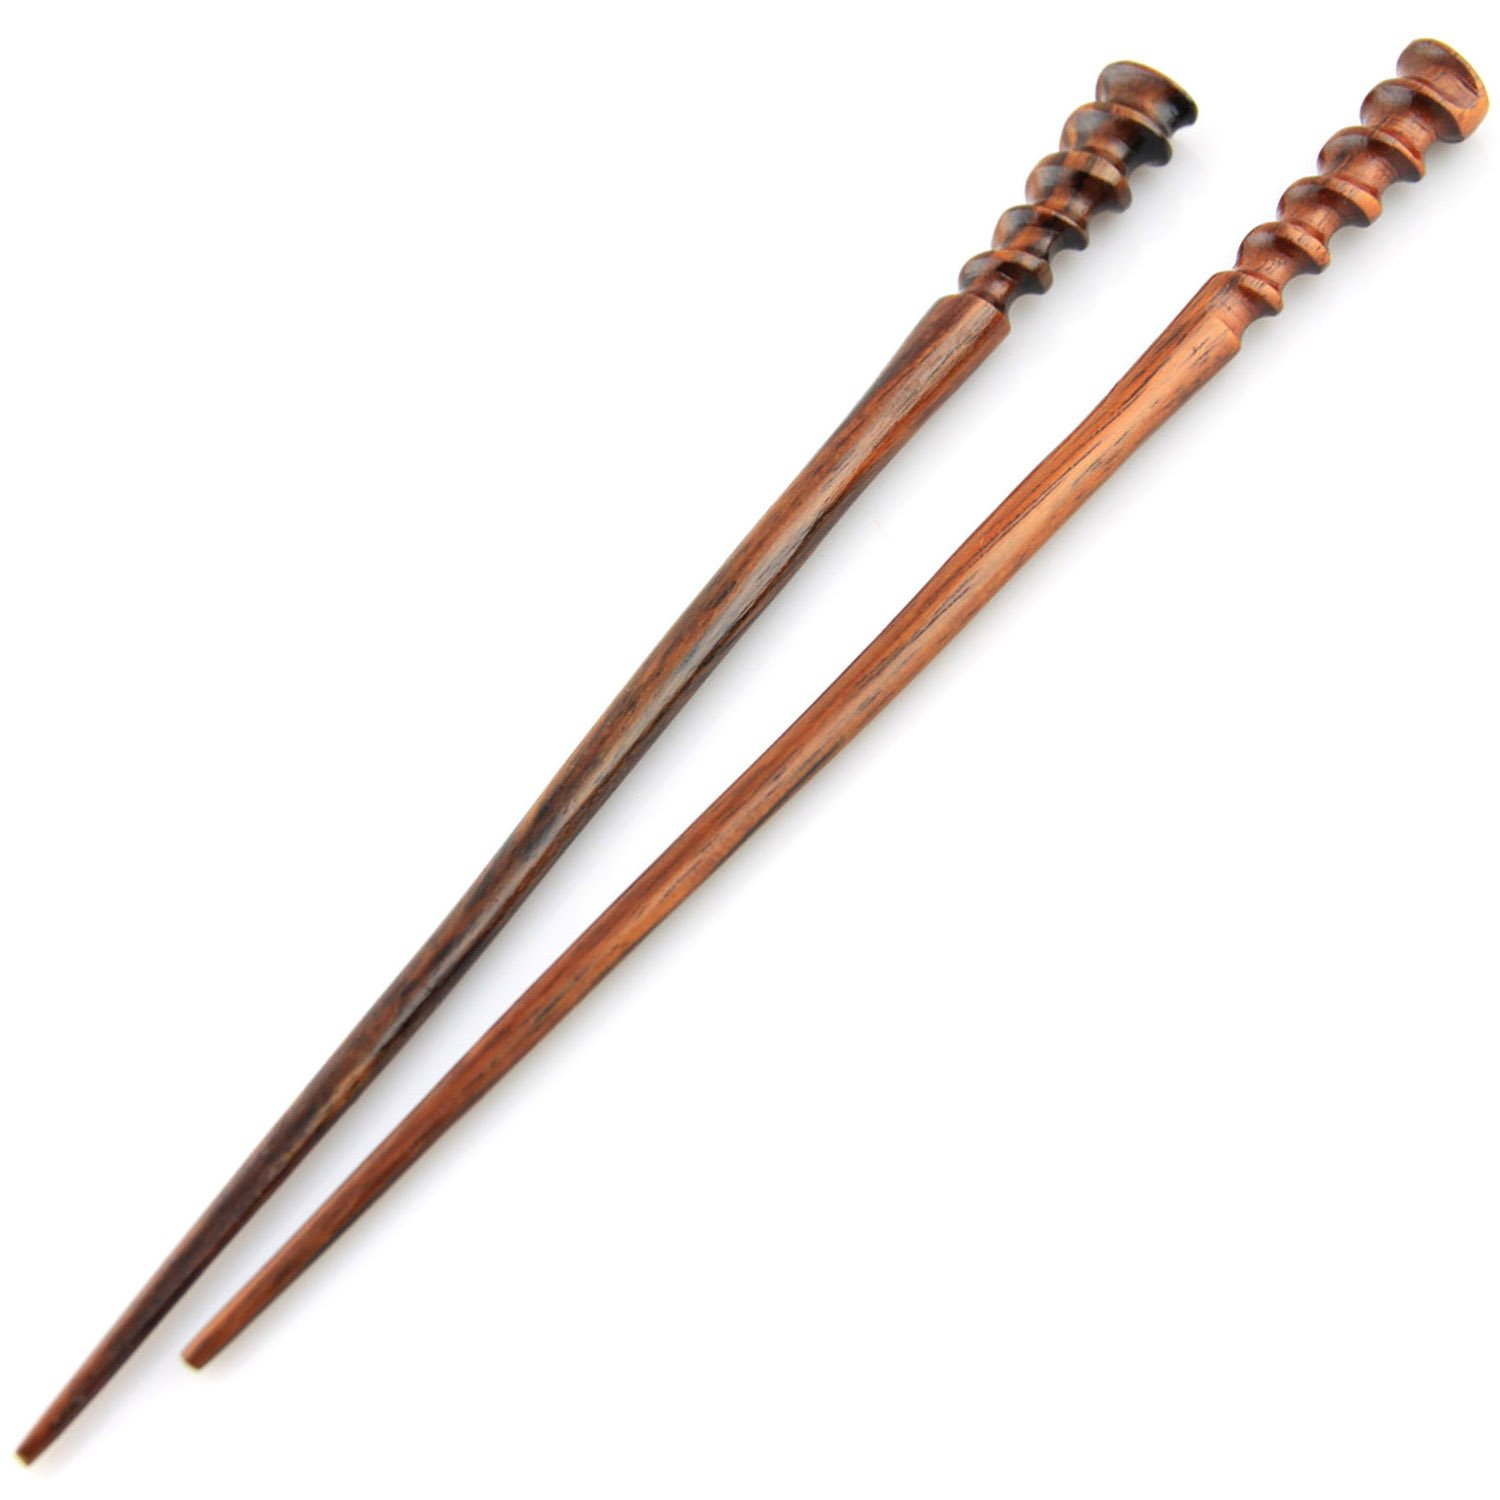 Evolatree Natural Hair Pin Chopsticks - Pair of Spiral Hair Sticks for Women and Men - Hand Carved Wood Styling Pin Set - Fine Cut Spiral - 7.5 Inches Long